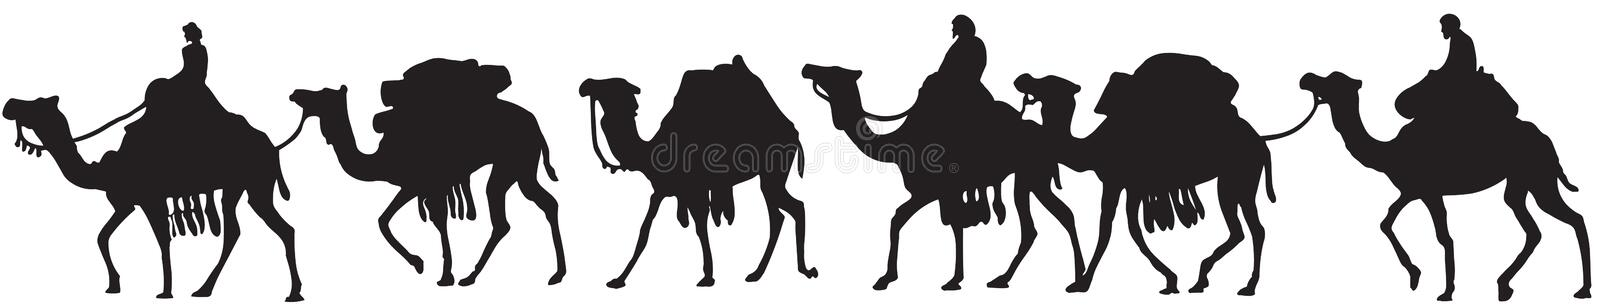 Camels royalty free illustration